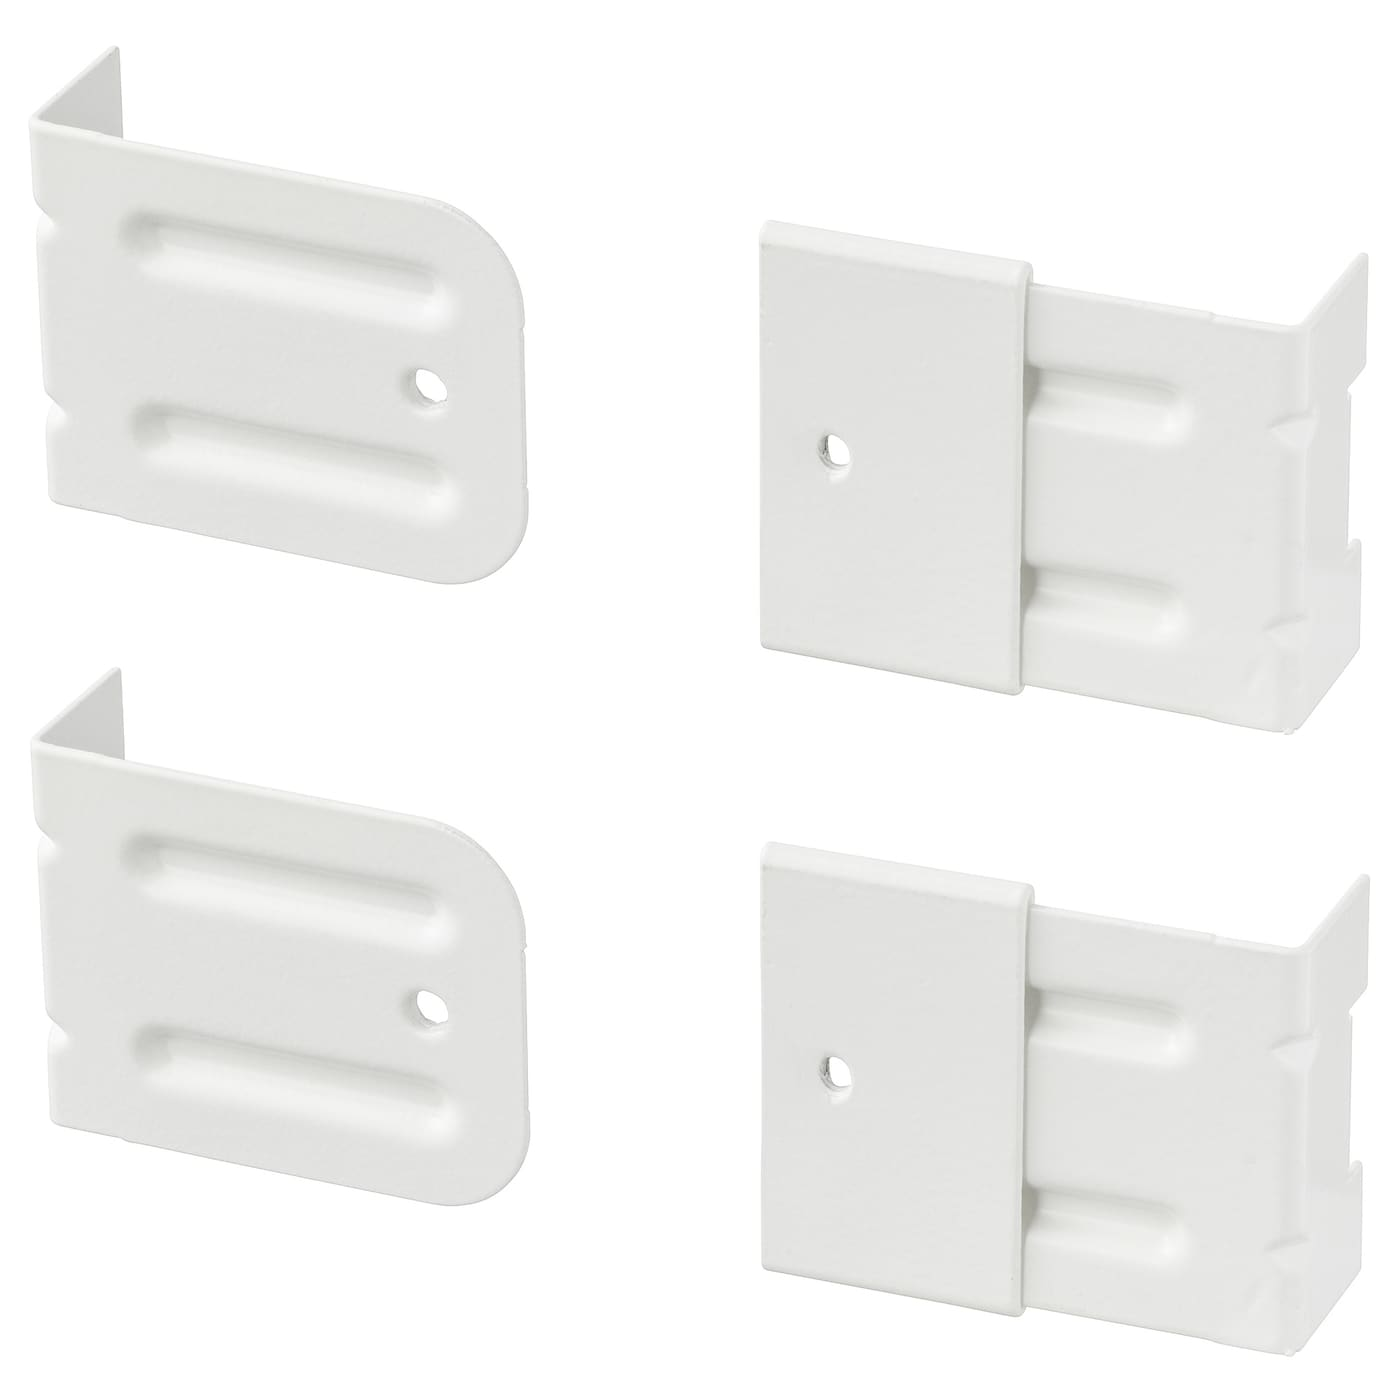 IKEA SKÅDIS connector for ALGOT